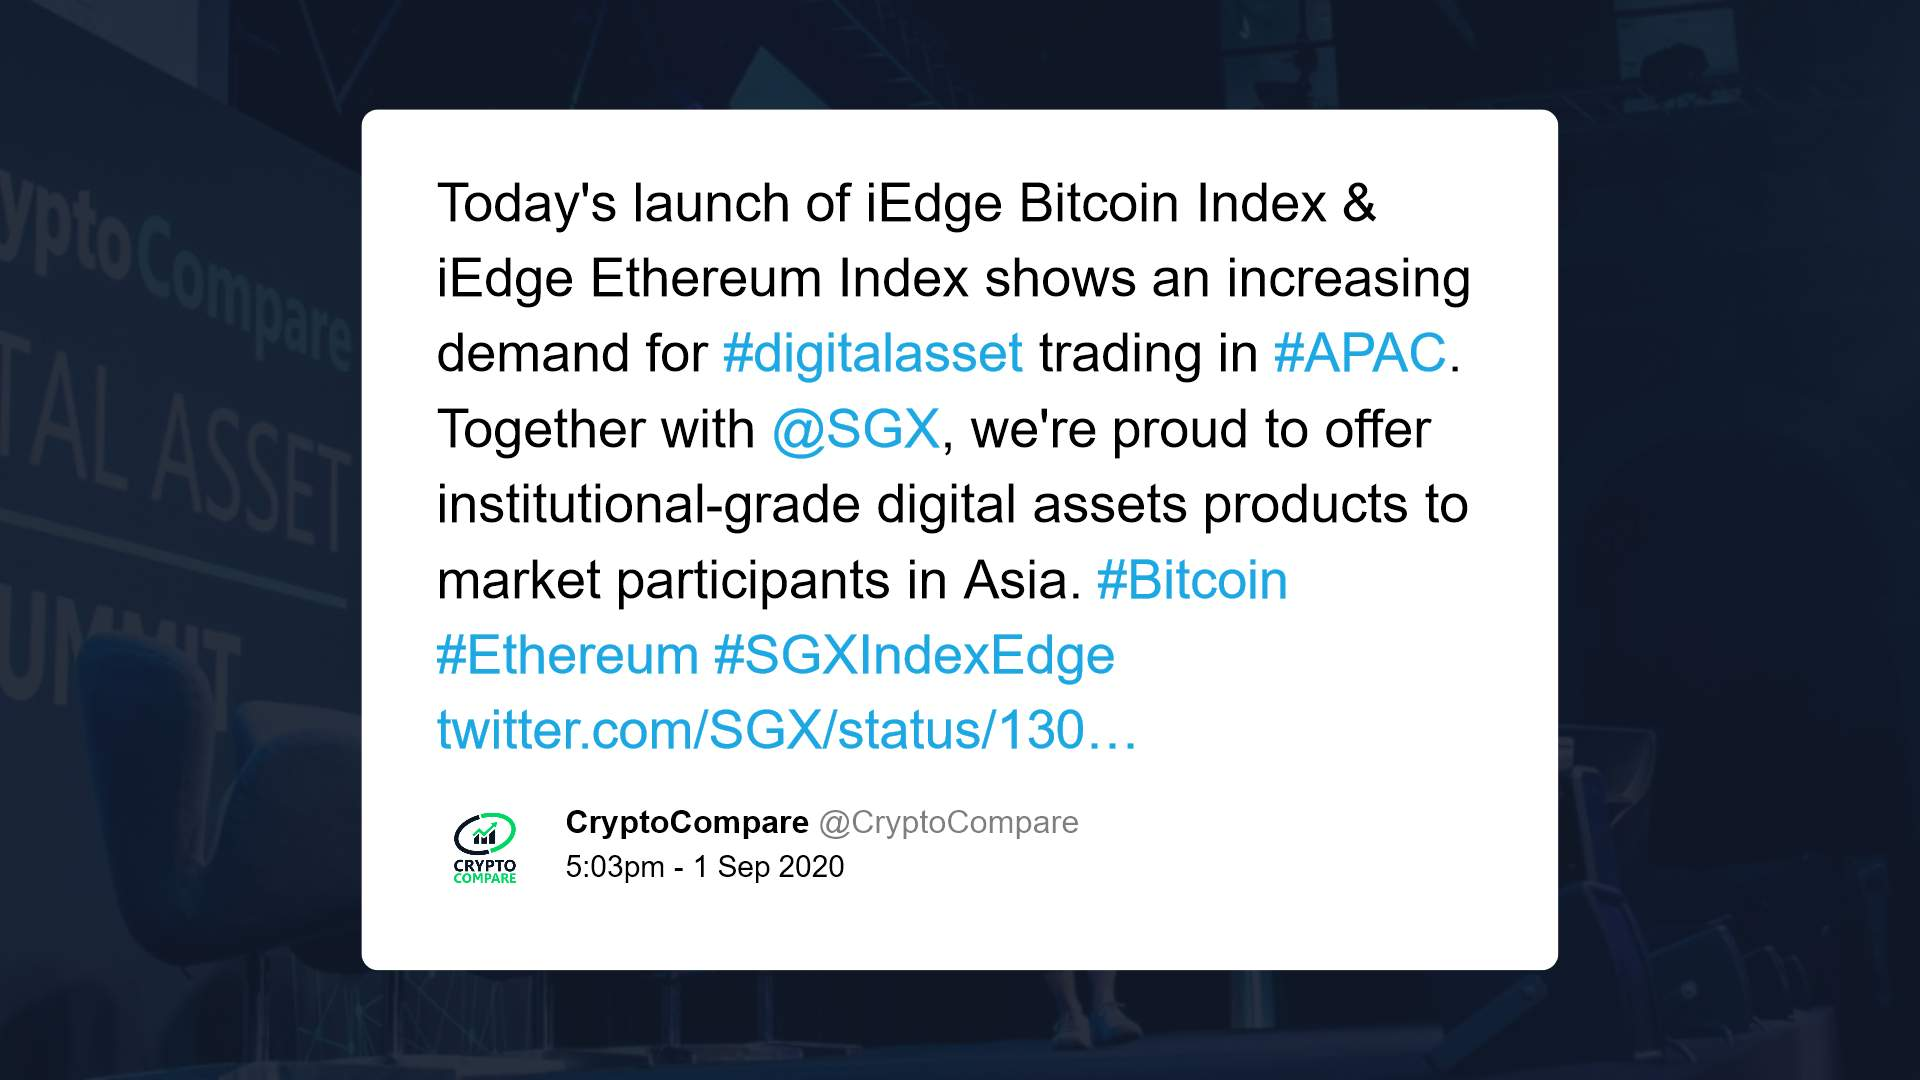 SGX in conjunction with CryptoCompare offering Asia-listed cryptocurrency indices